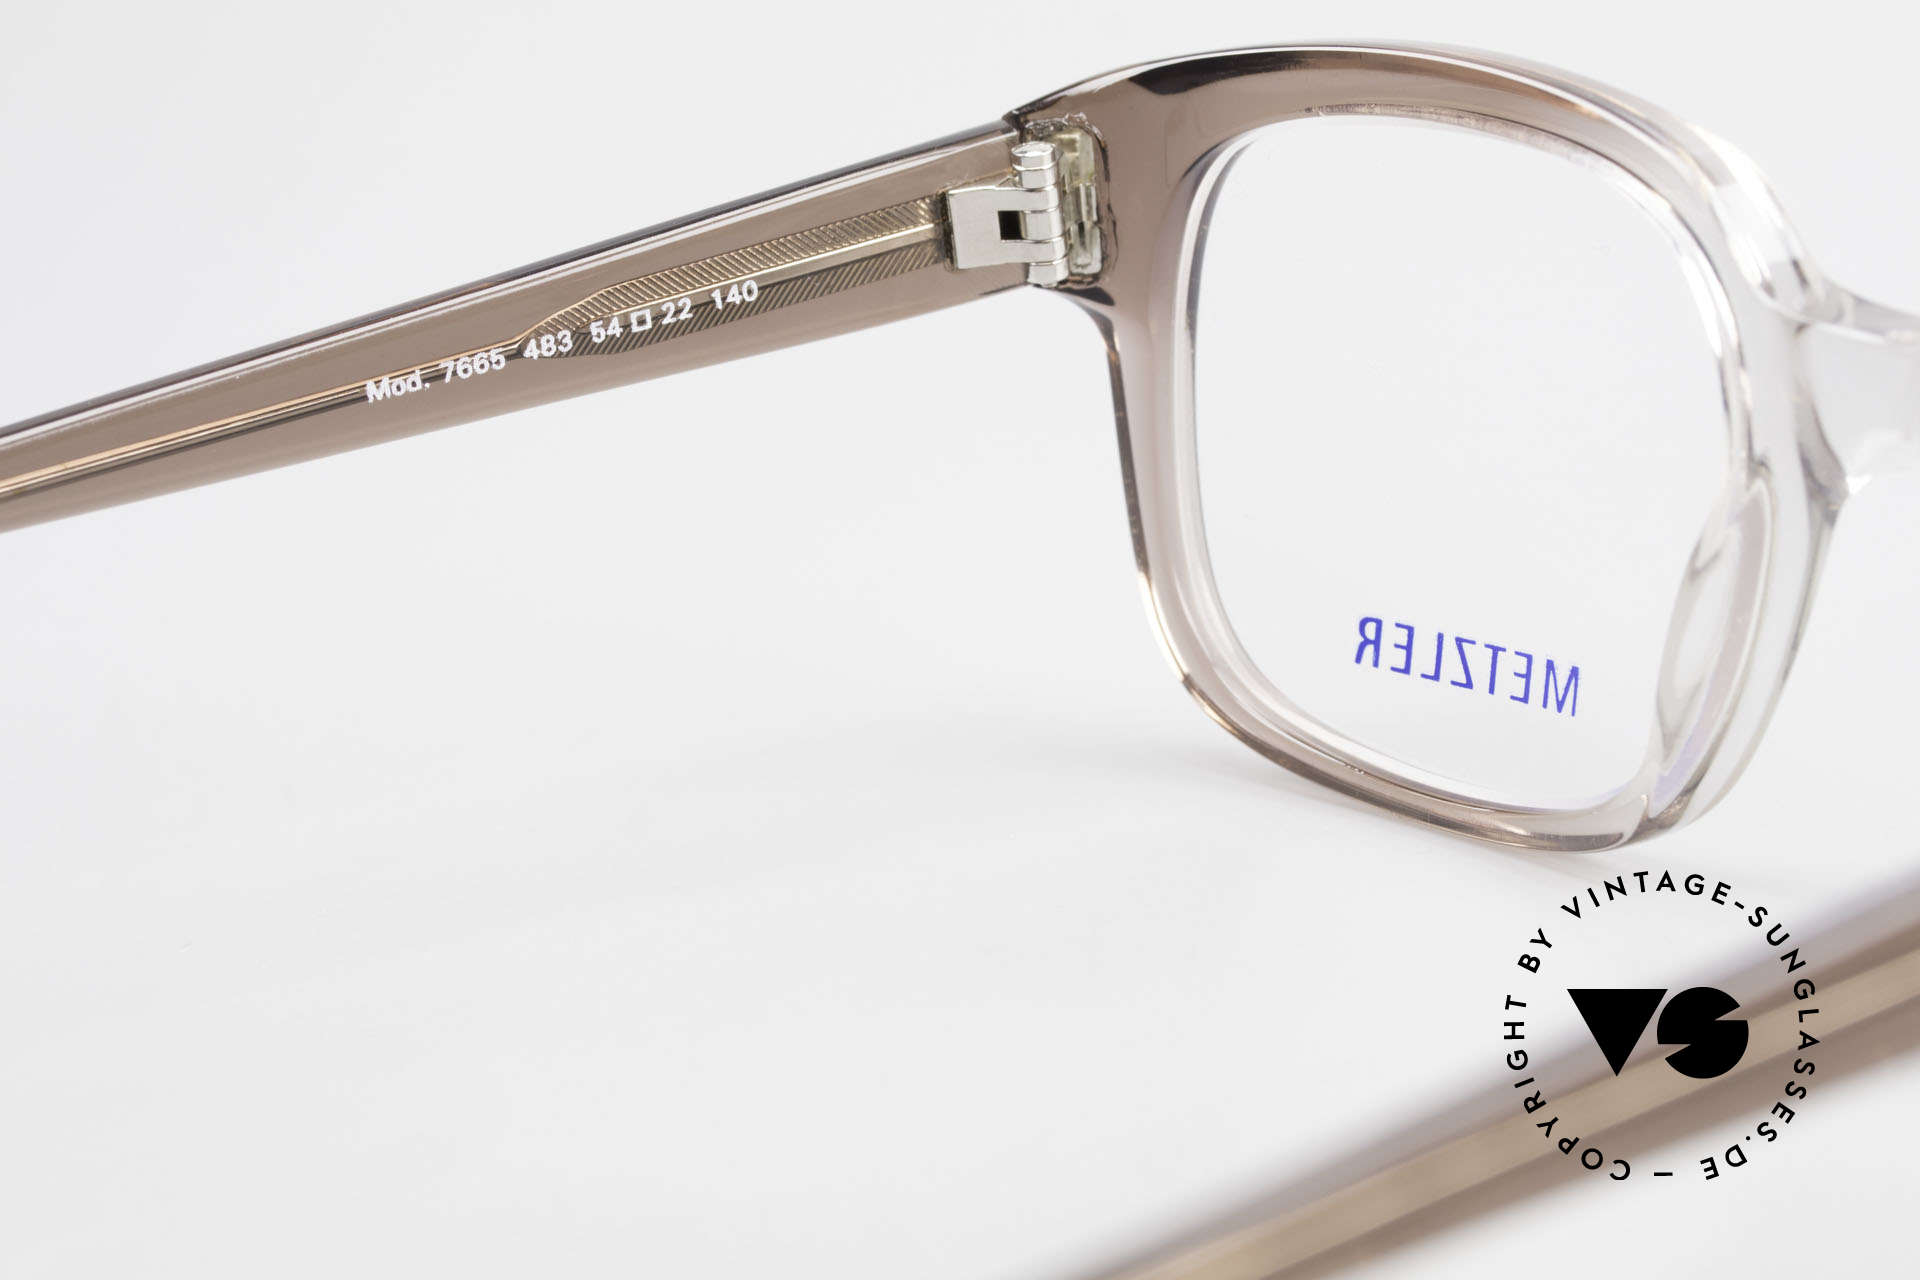 Metzler 7665 Medium Old School Eyeglasses 80's, the frame (in M to L size) can be glazed optionally, Made for Men